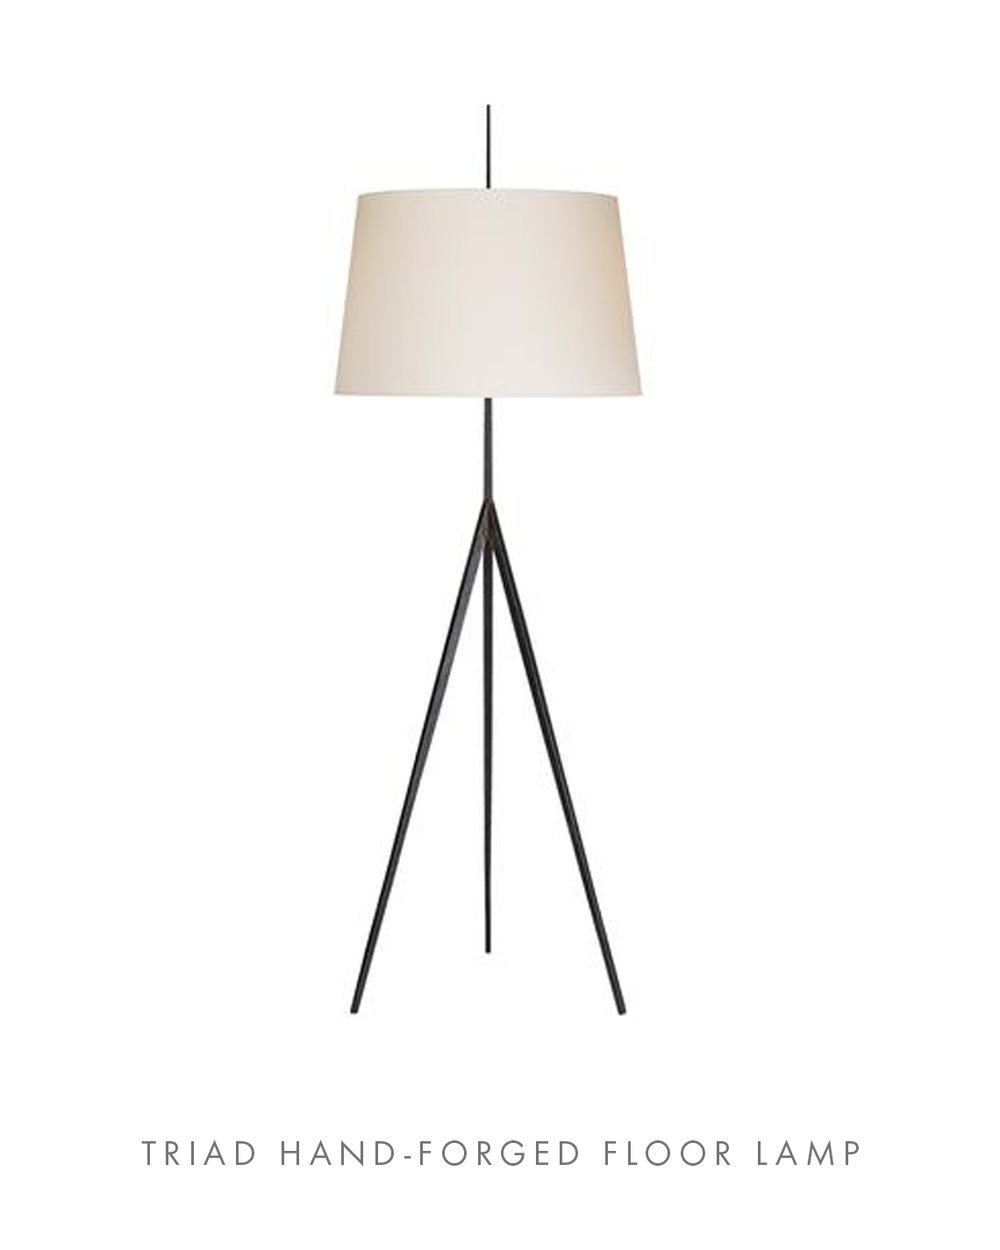 _TRIAD-HAND-FORGED-FLOOR-LAMP.jpg